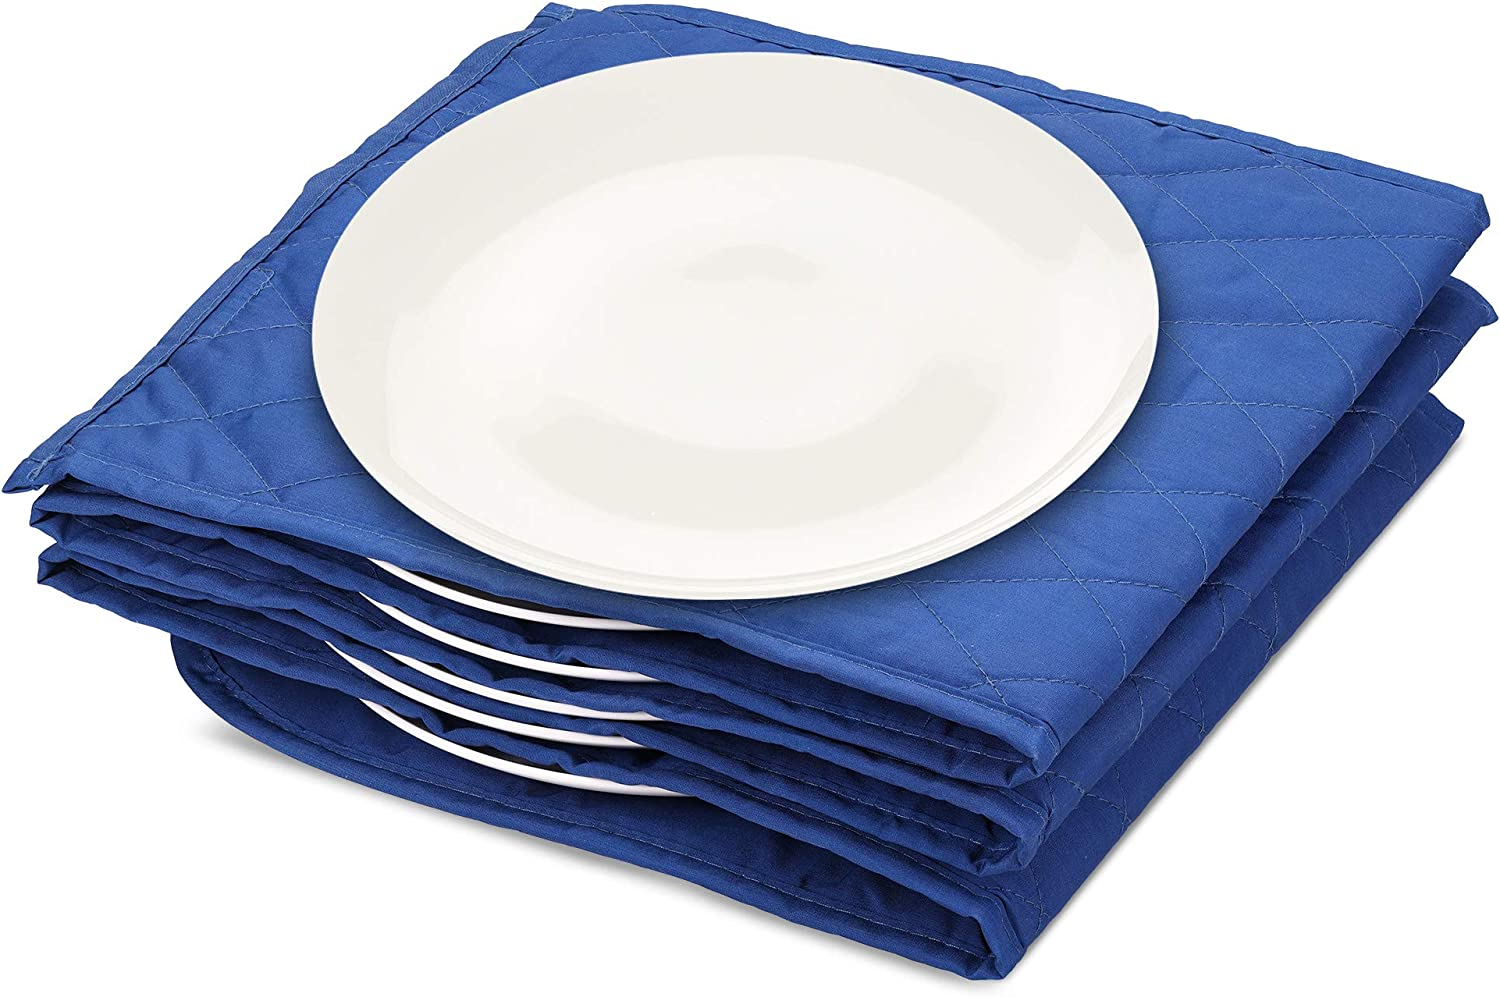 Navaris Electric Plate Warmer - 10 Plate Blanket Heater Pockets for Warming Dinner Plates to 165 Degrees in 10 Minutes - Thin Folding Design - Blue